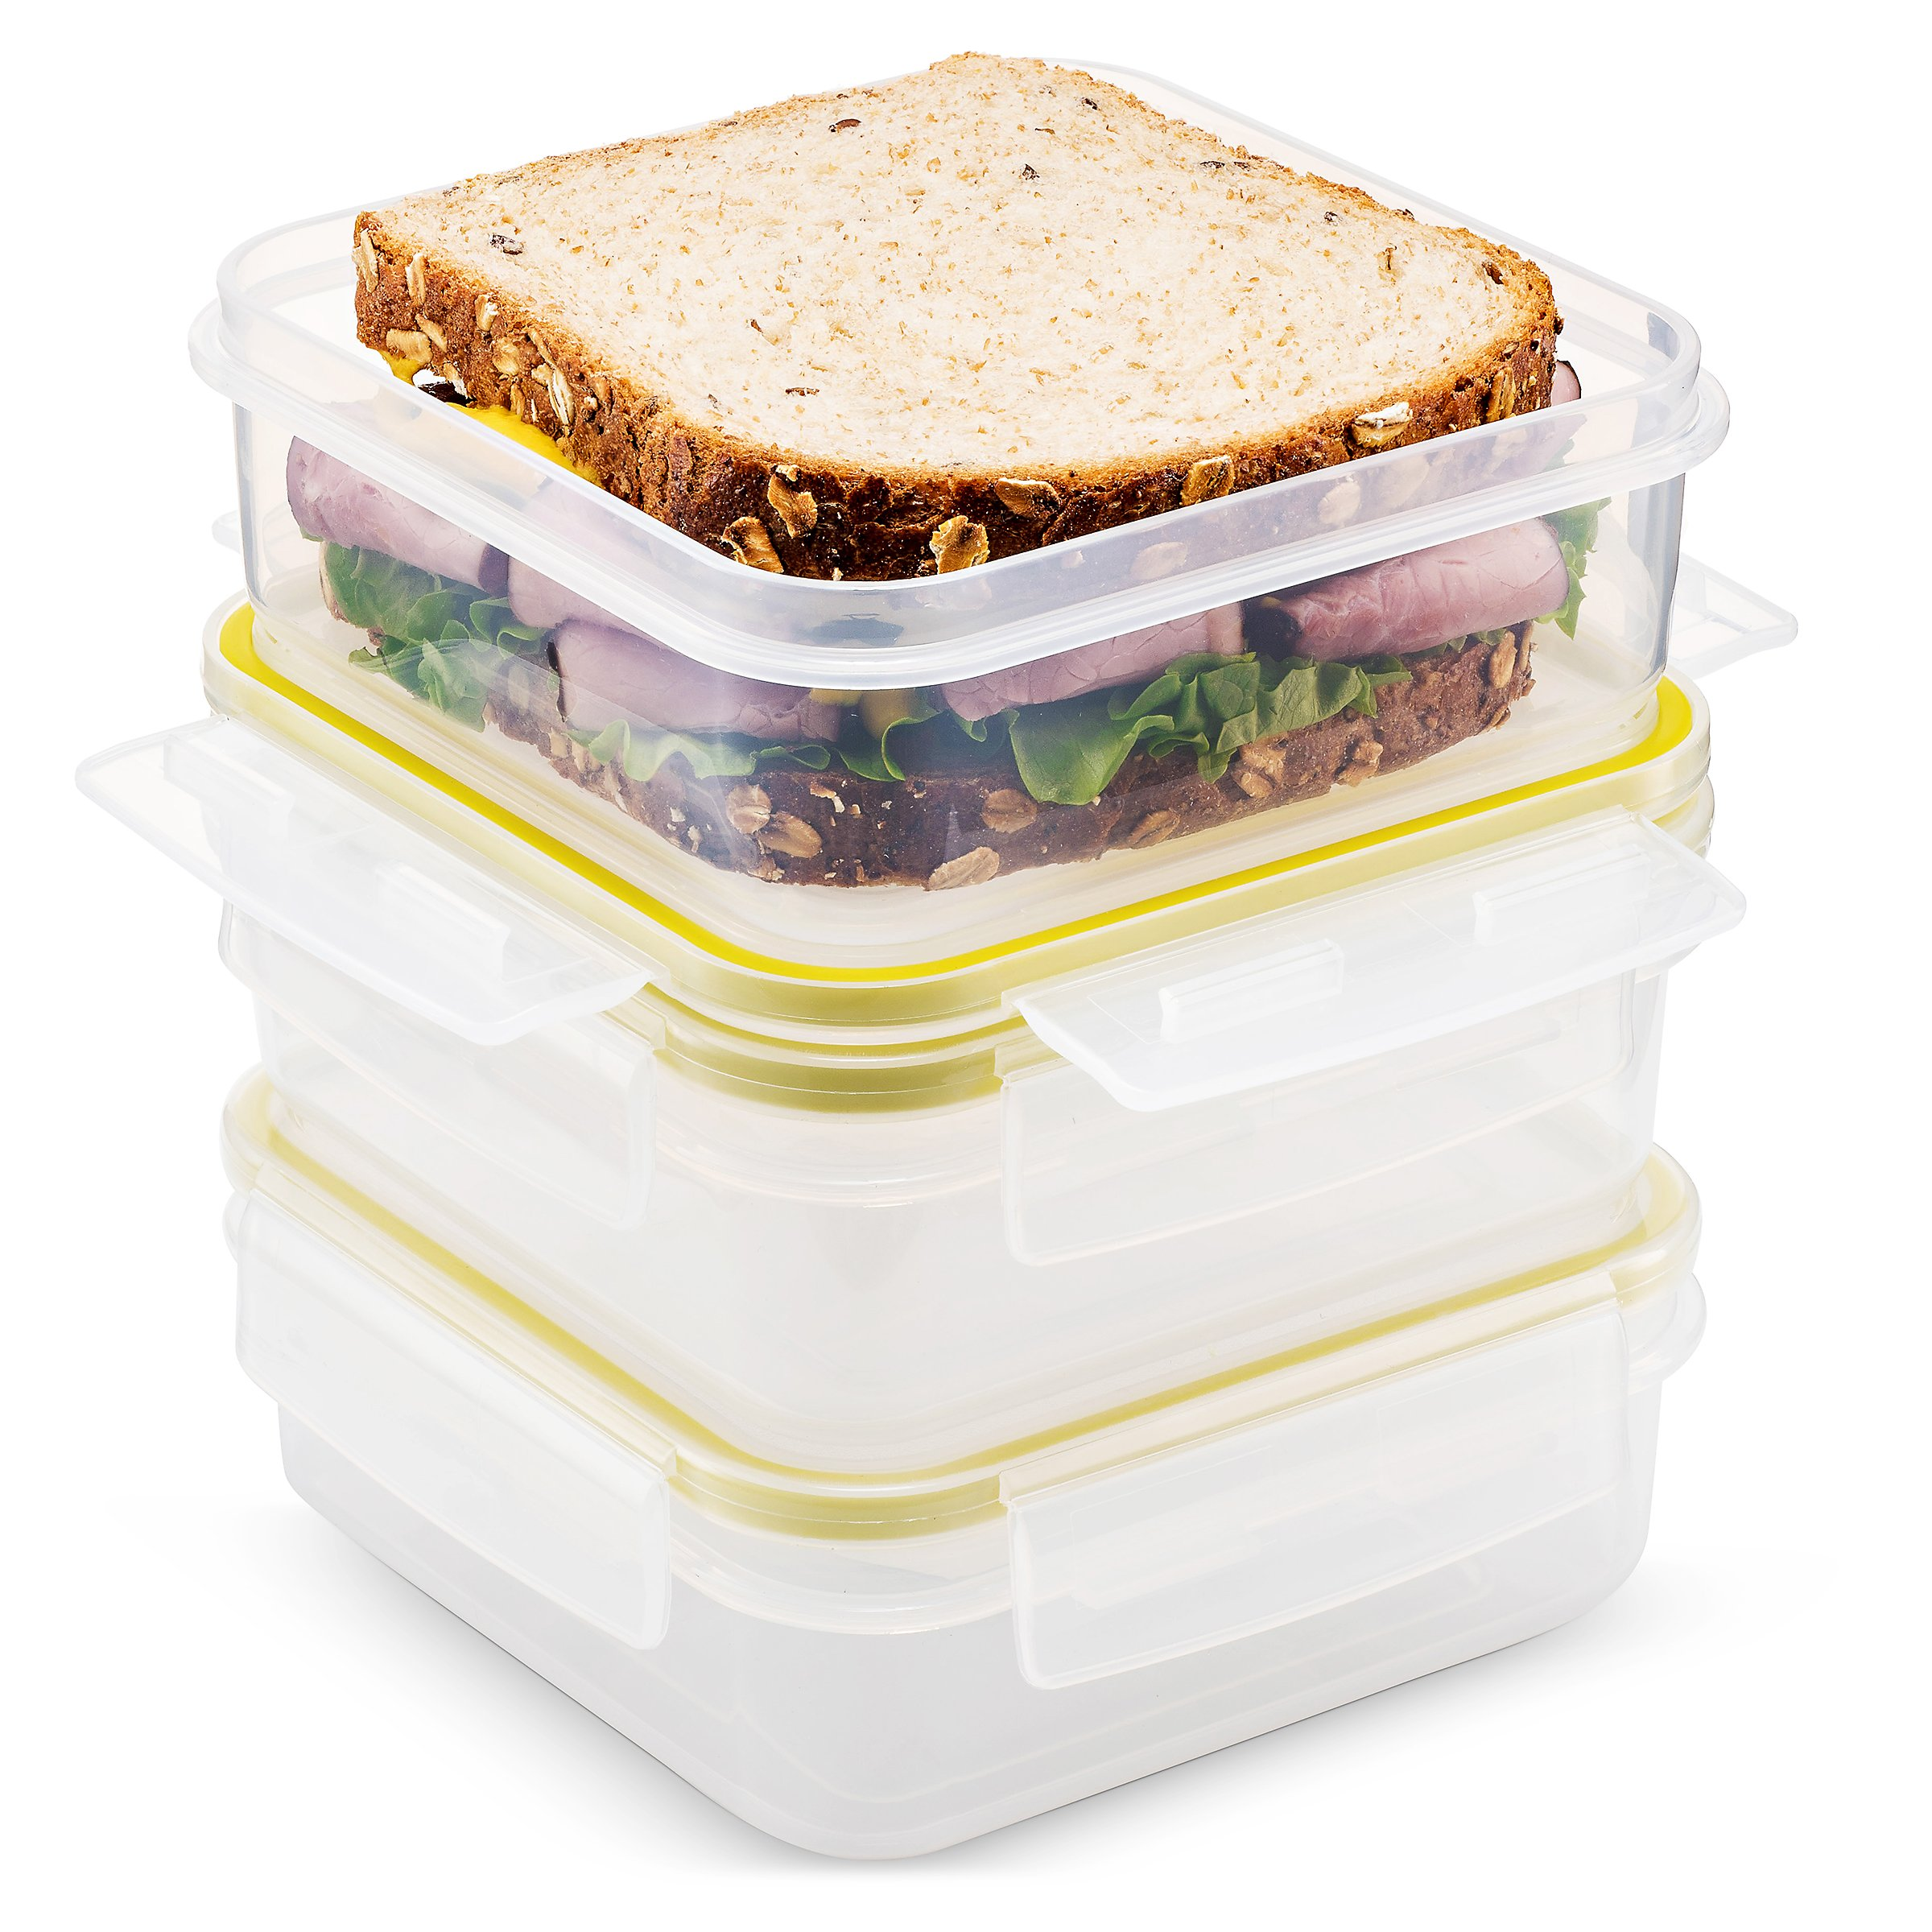 Komax Biokips Food Storage Sandwich Lunch Box Container 23oz. (set of 3) - Airtight, Leakproof With Locking Lids - BPA Free Plastic - Microwave, Freezer and Dishwasher Safe by Komax